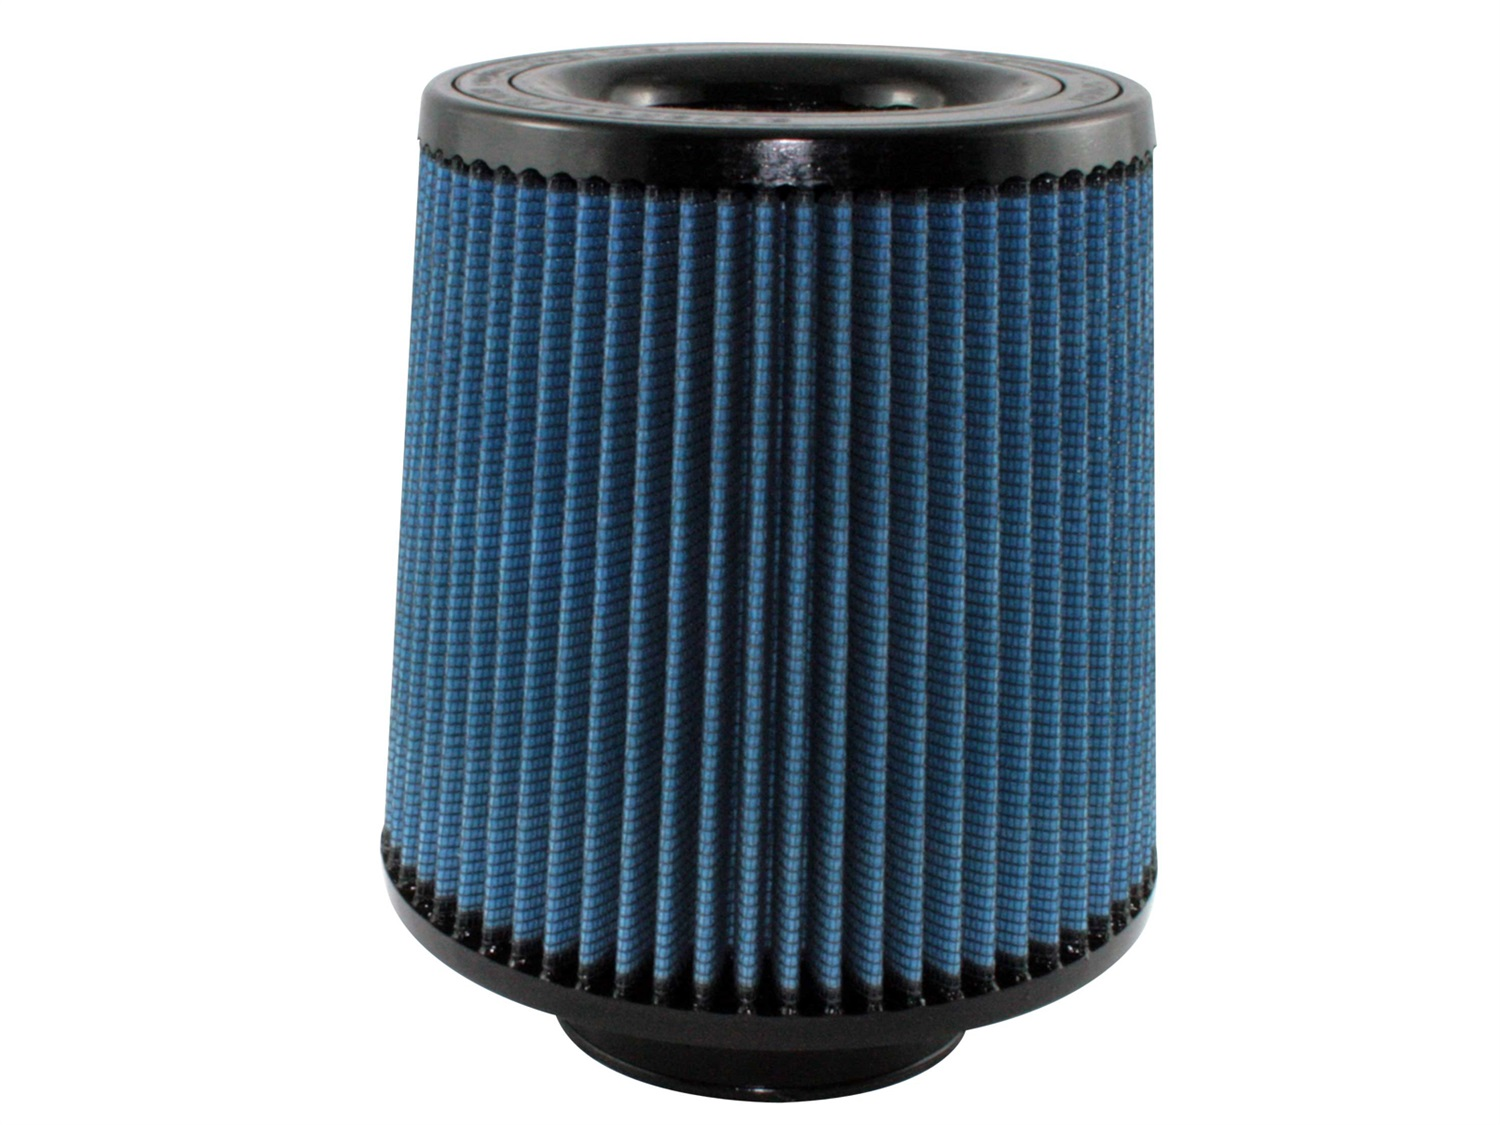 aFe Power 24-91009 MagnumFLOW Universal Clamp On PRO 5R Air Filter 24-91009